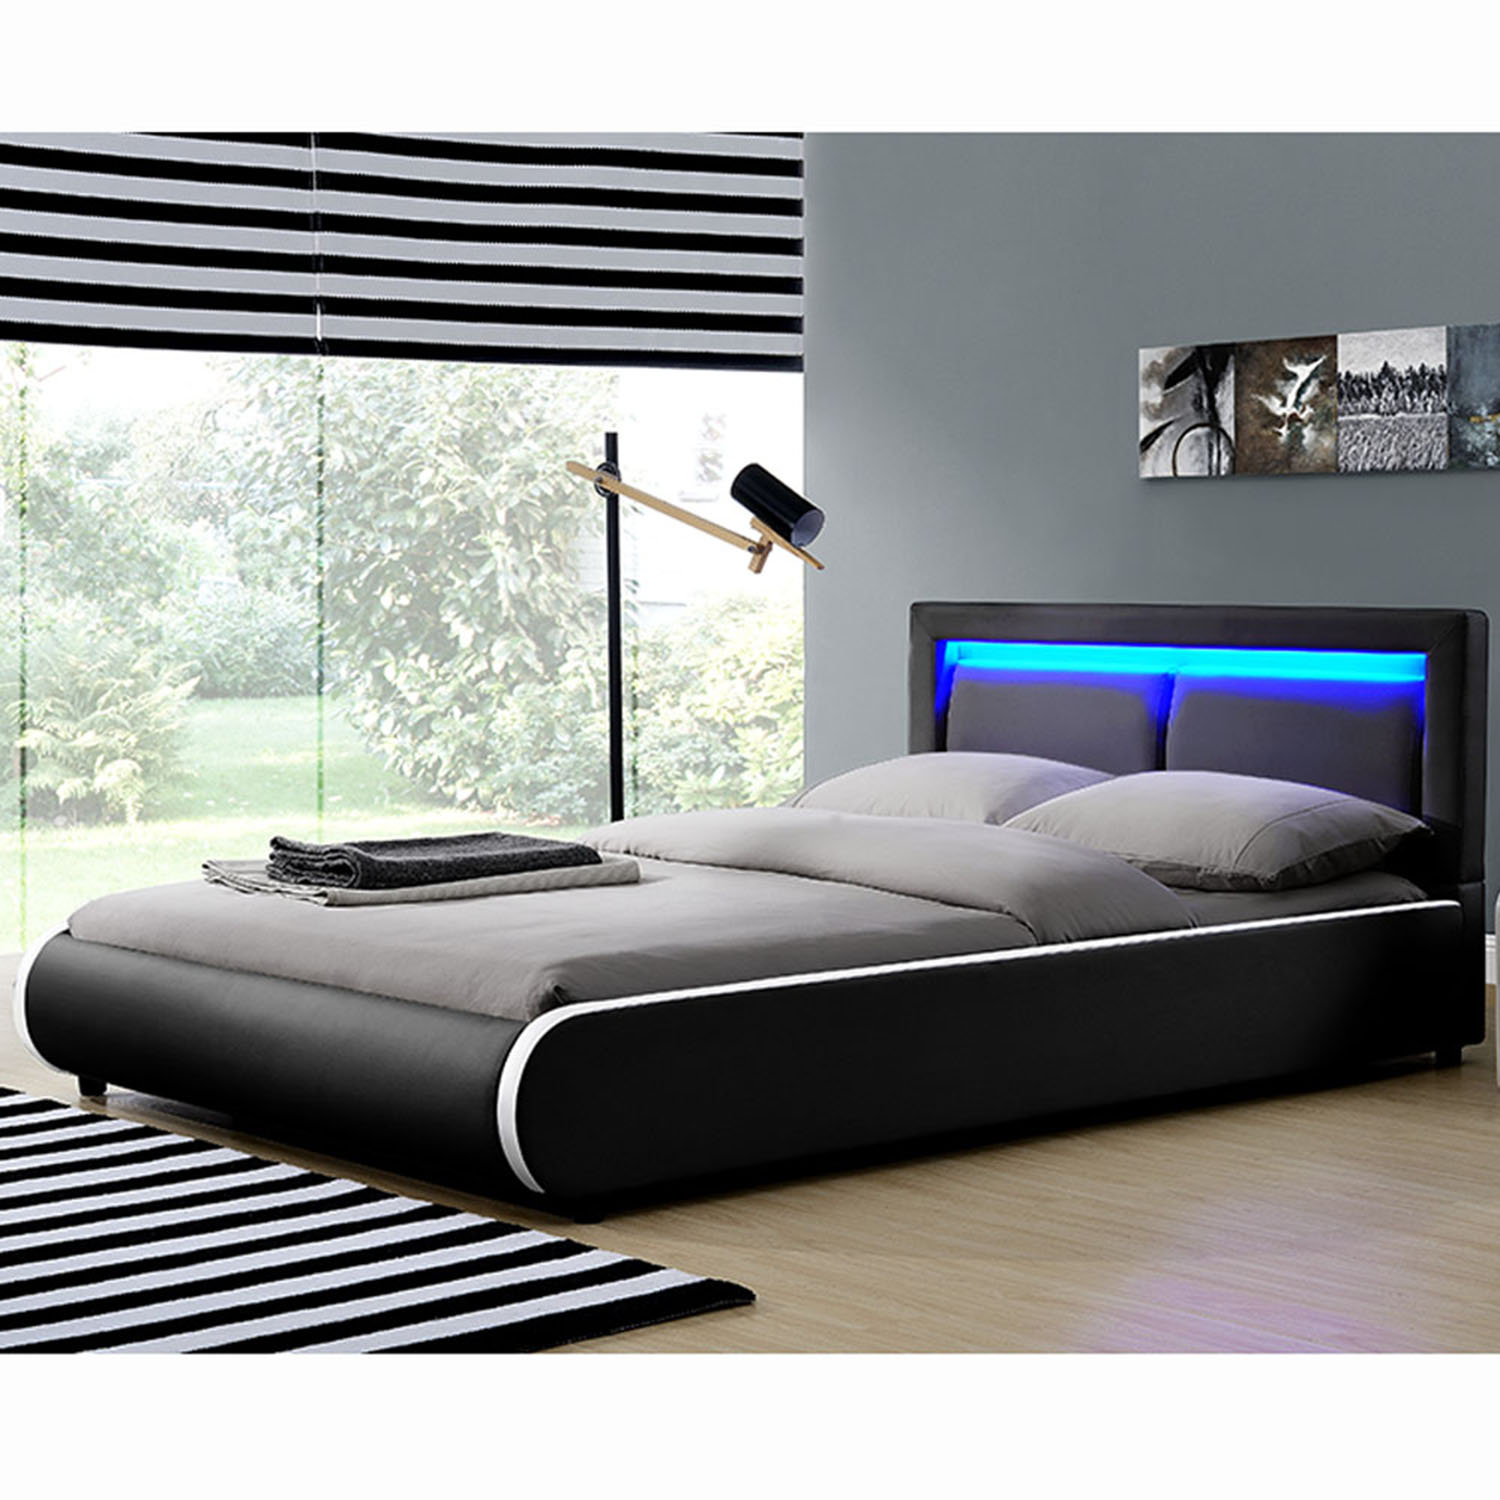 led polsterbett kunstlederbett ehebett bett doppelbett designbett bettgestell ebay. Black Bedroom Furniture Sets. Home Design Ideas